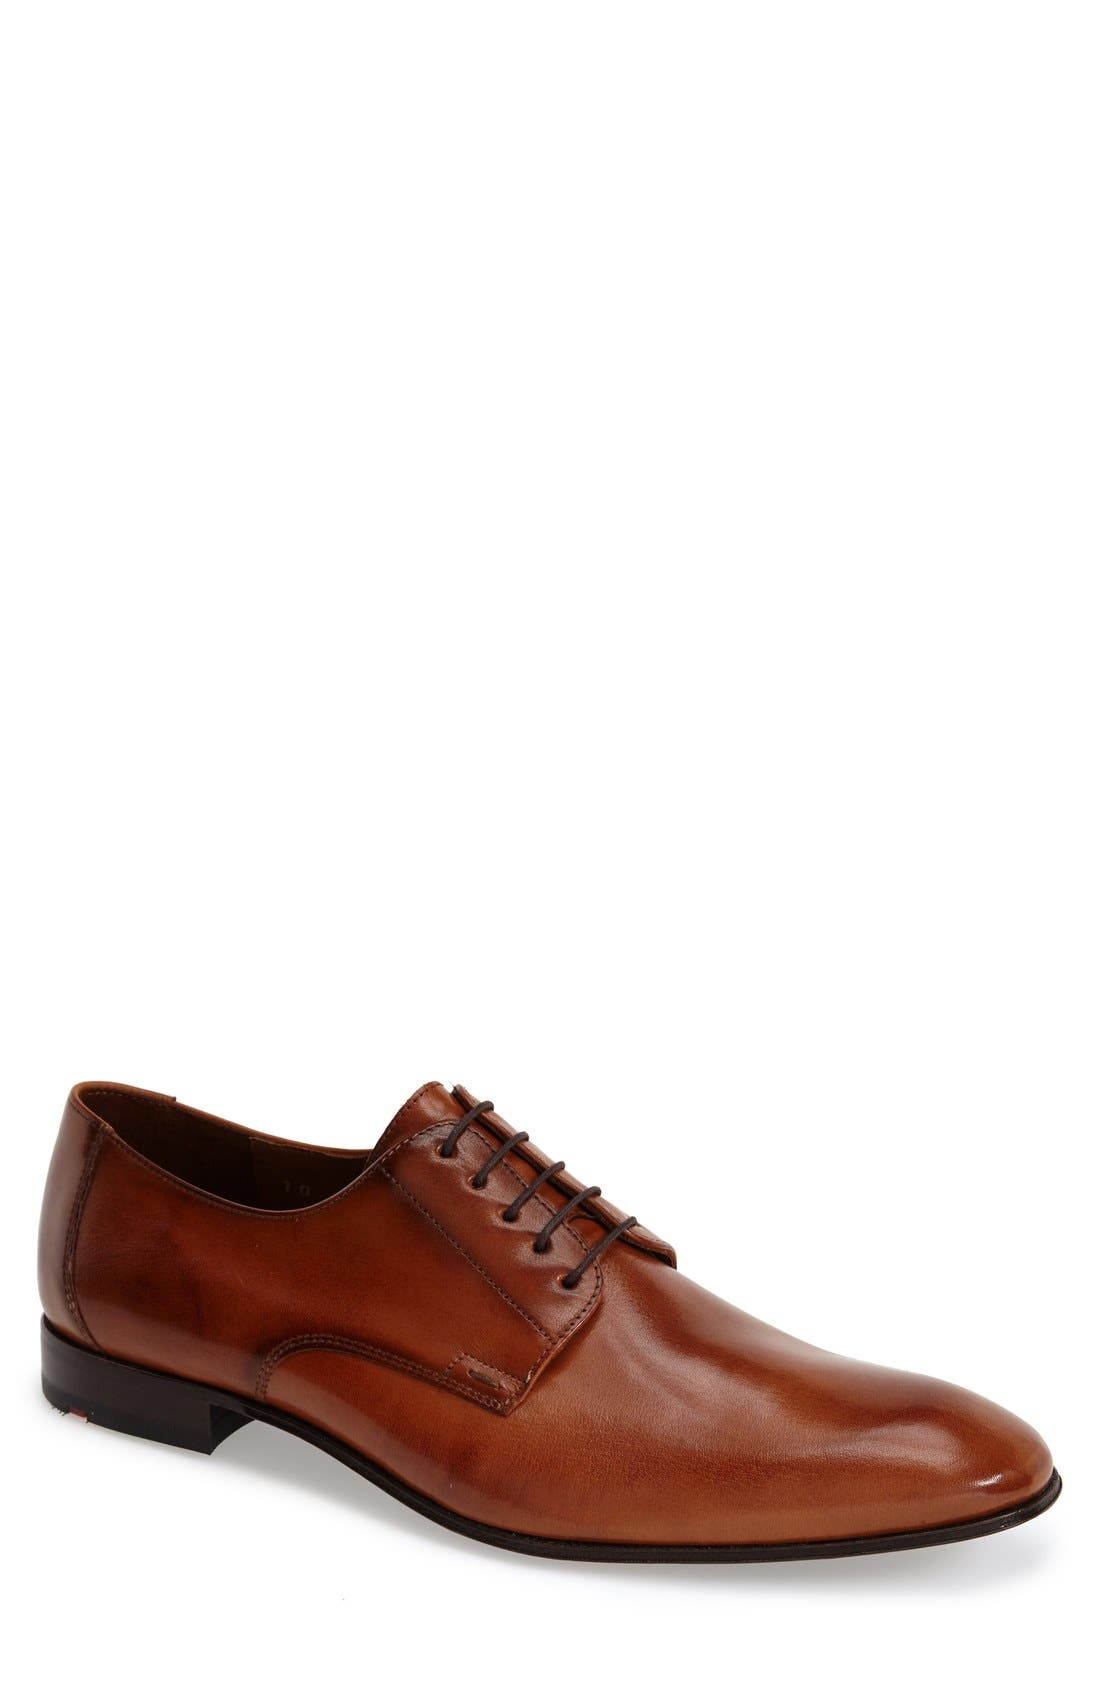 'Laurin' Plain Toe Derby,                             Main thumbnail 1, color,                             LIGHT BROWN